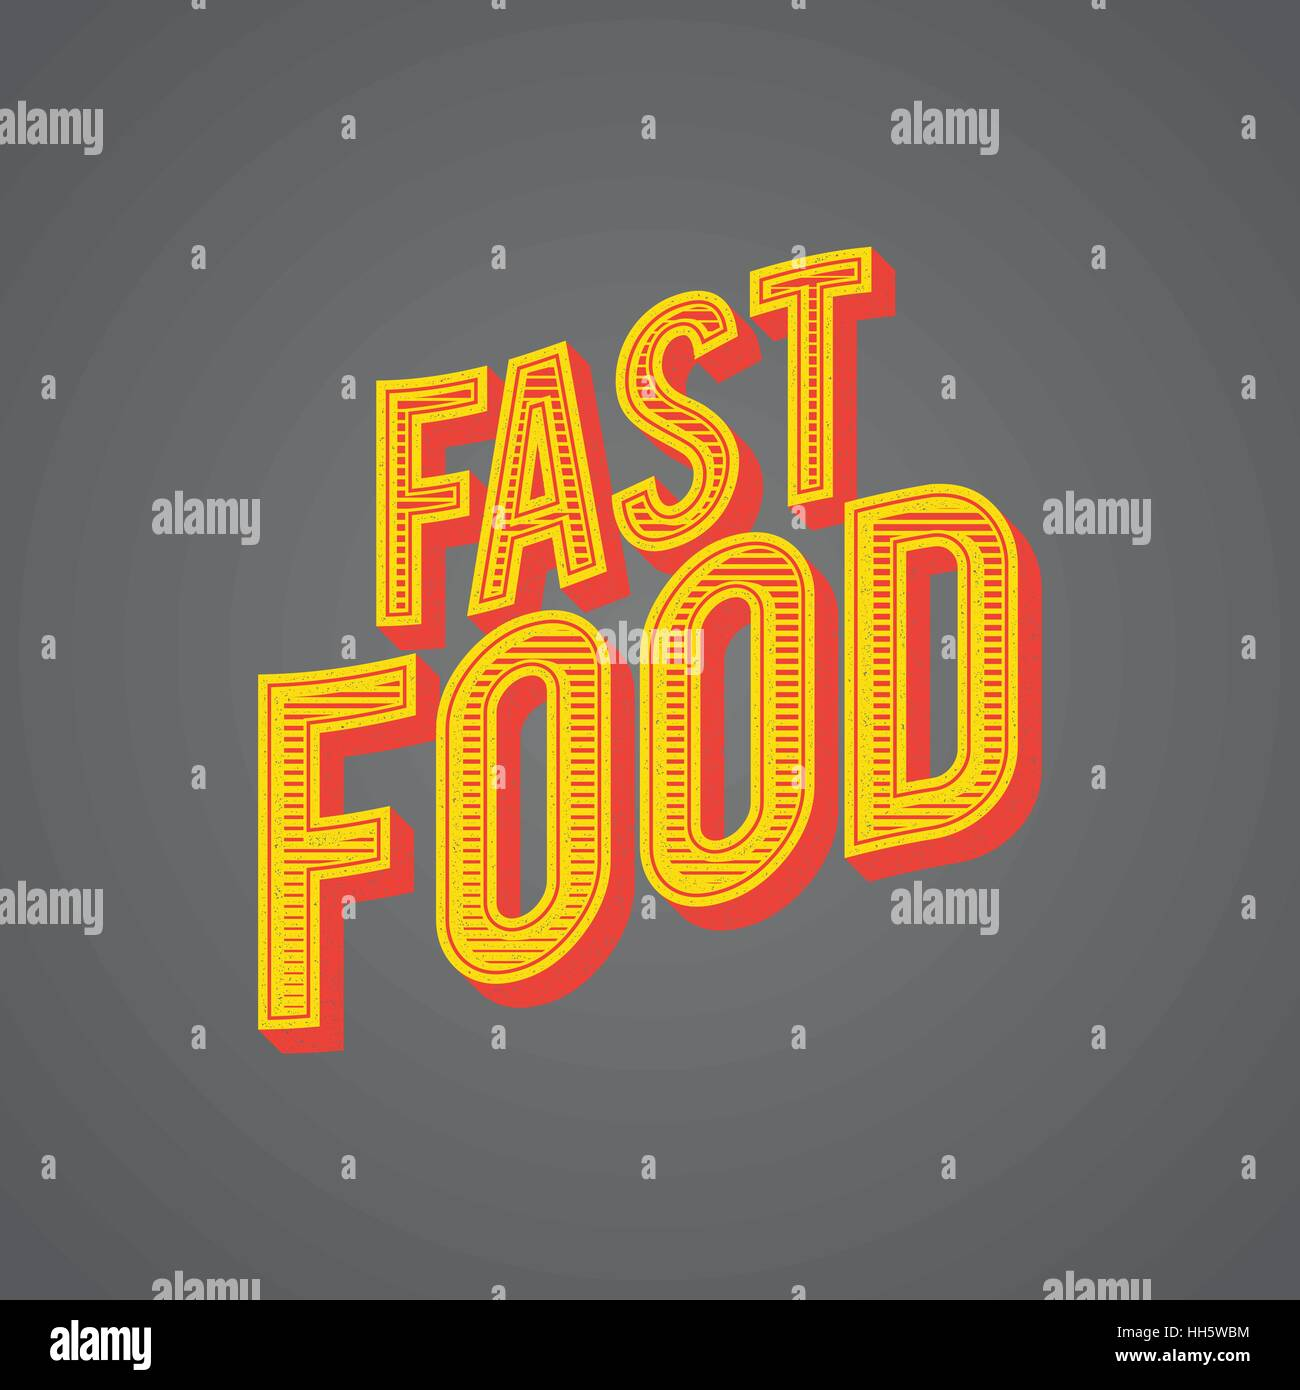 Graphic Vector Illustration Fast Food Word Concept - Stock Vector